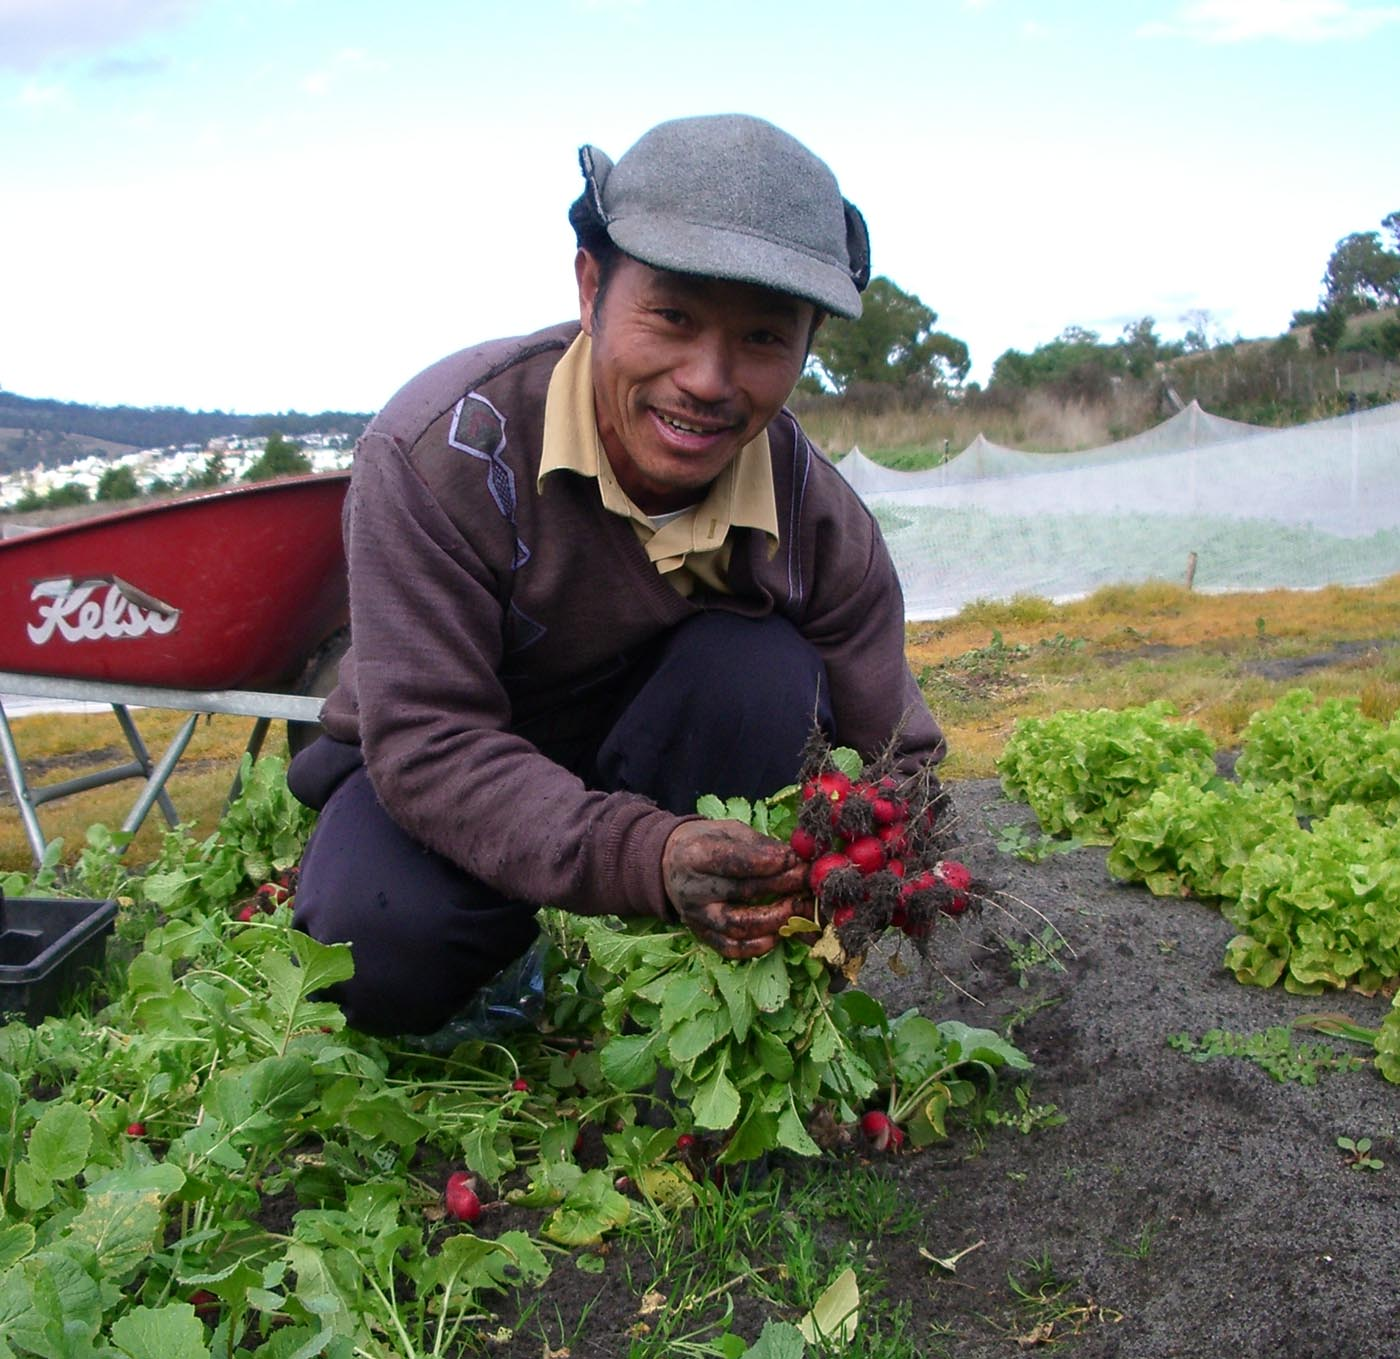 Colour photo of a man harvesting radishes. - click to view larger image